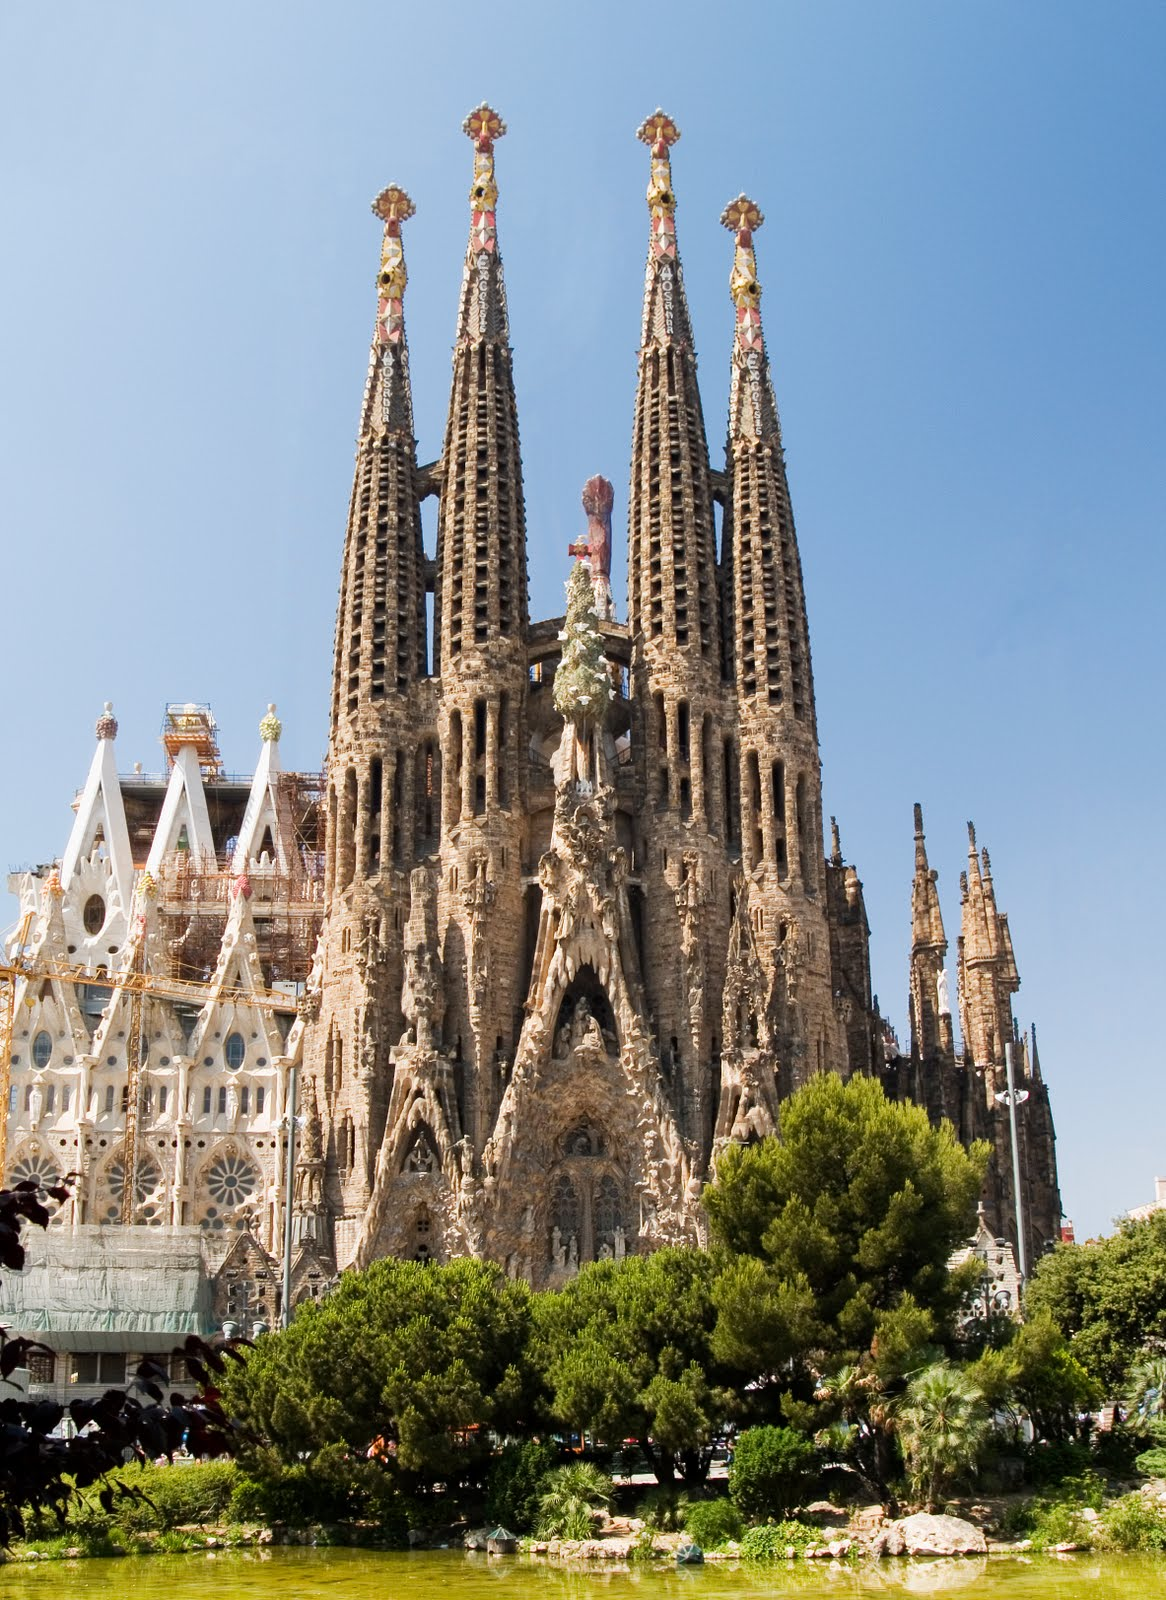 sagrada familia, Pilgrimage to Fatima Lourdes Spain